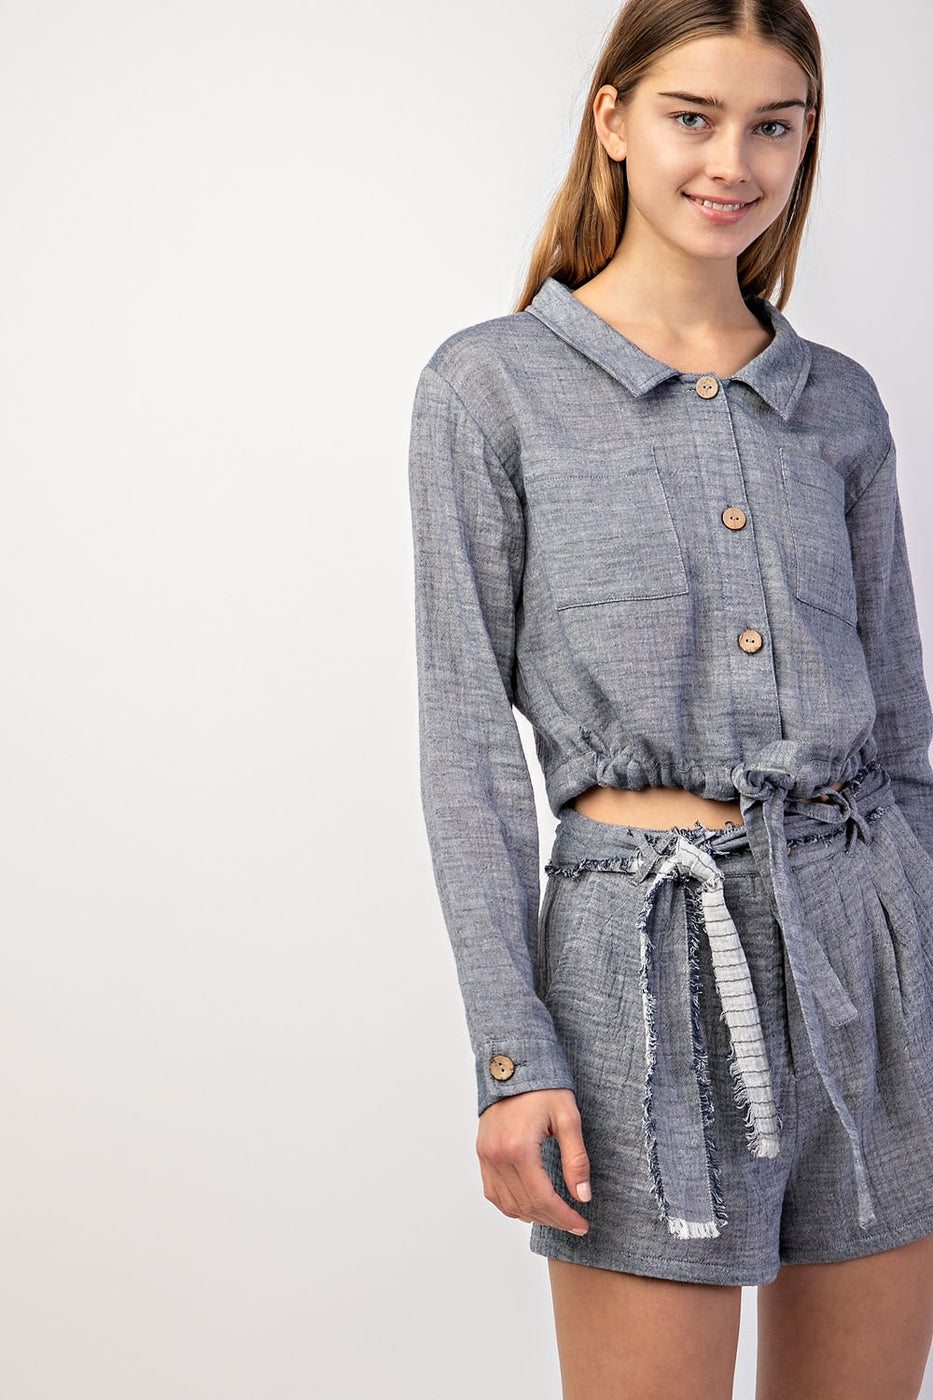 Denim Long Sleeve Blouse With Pockets Siin Bees